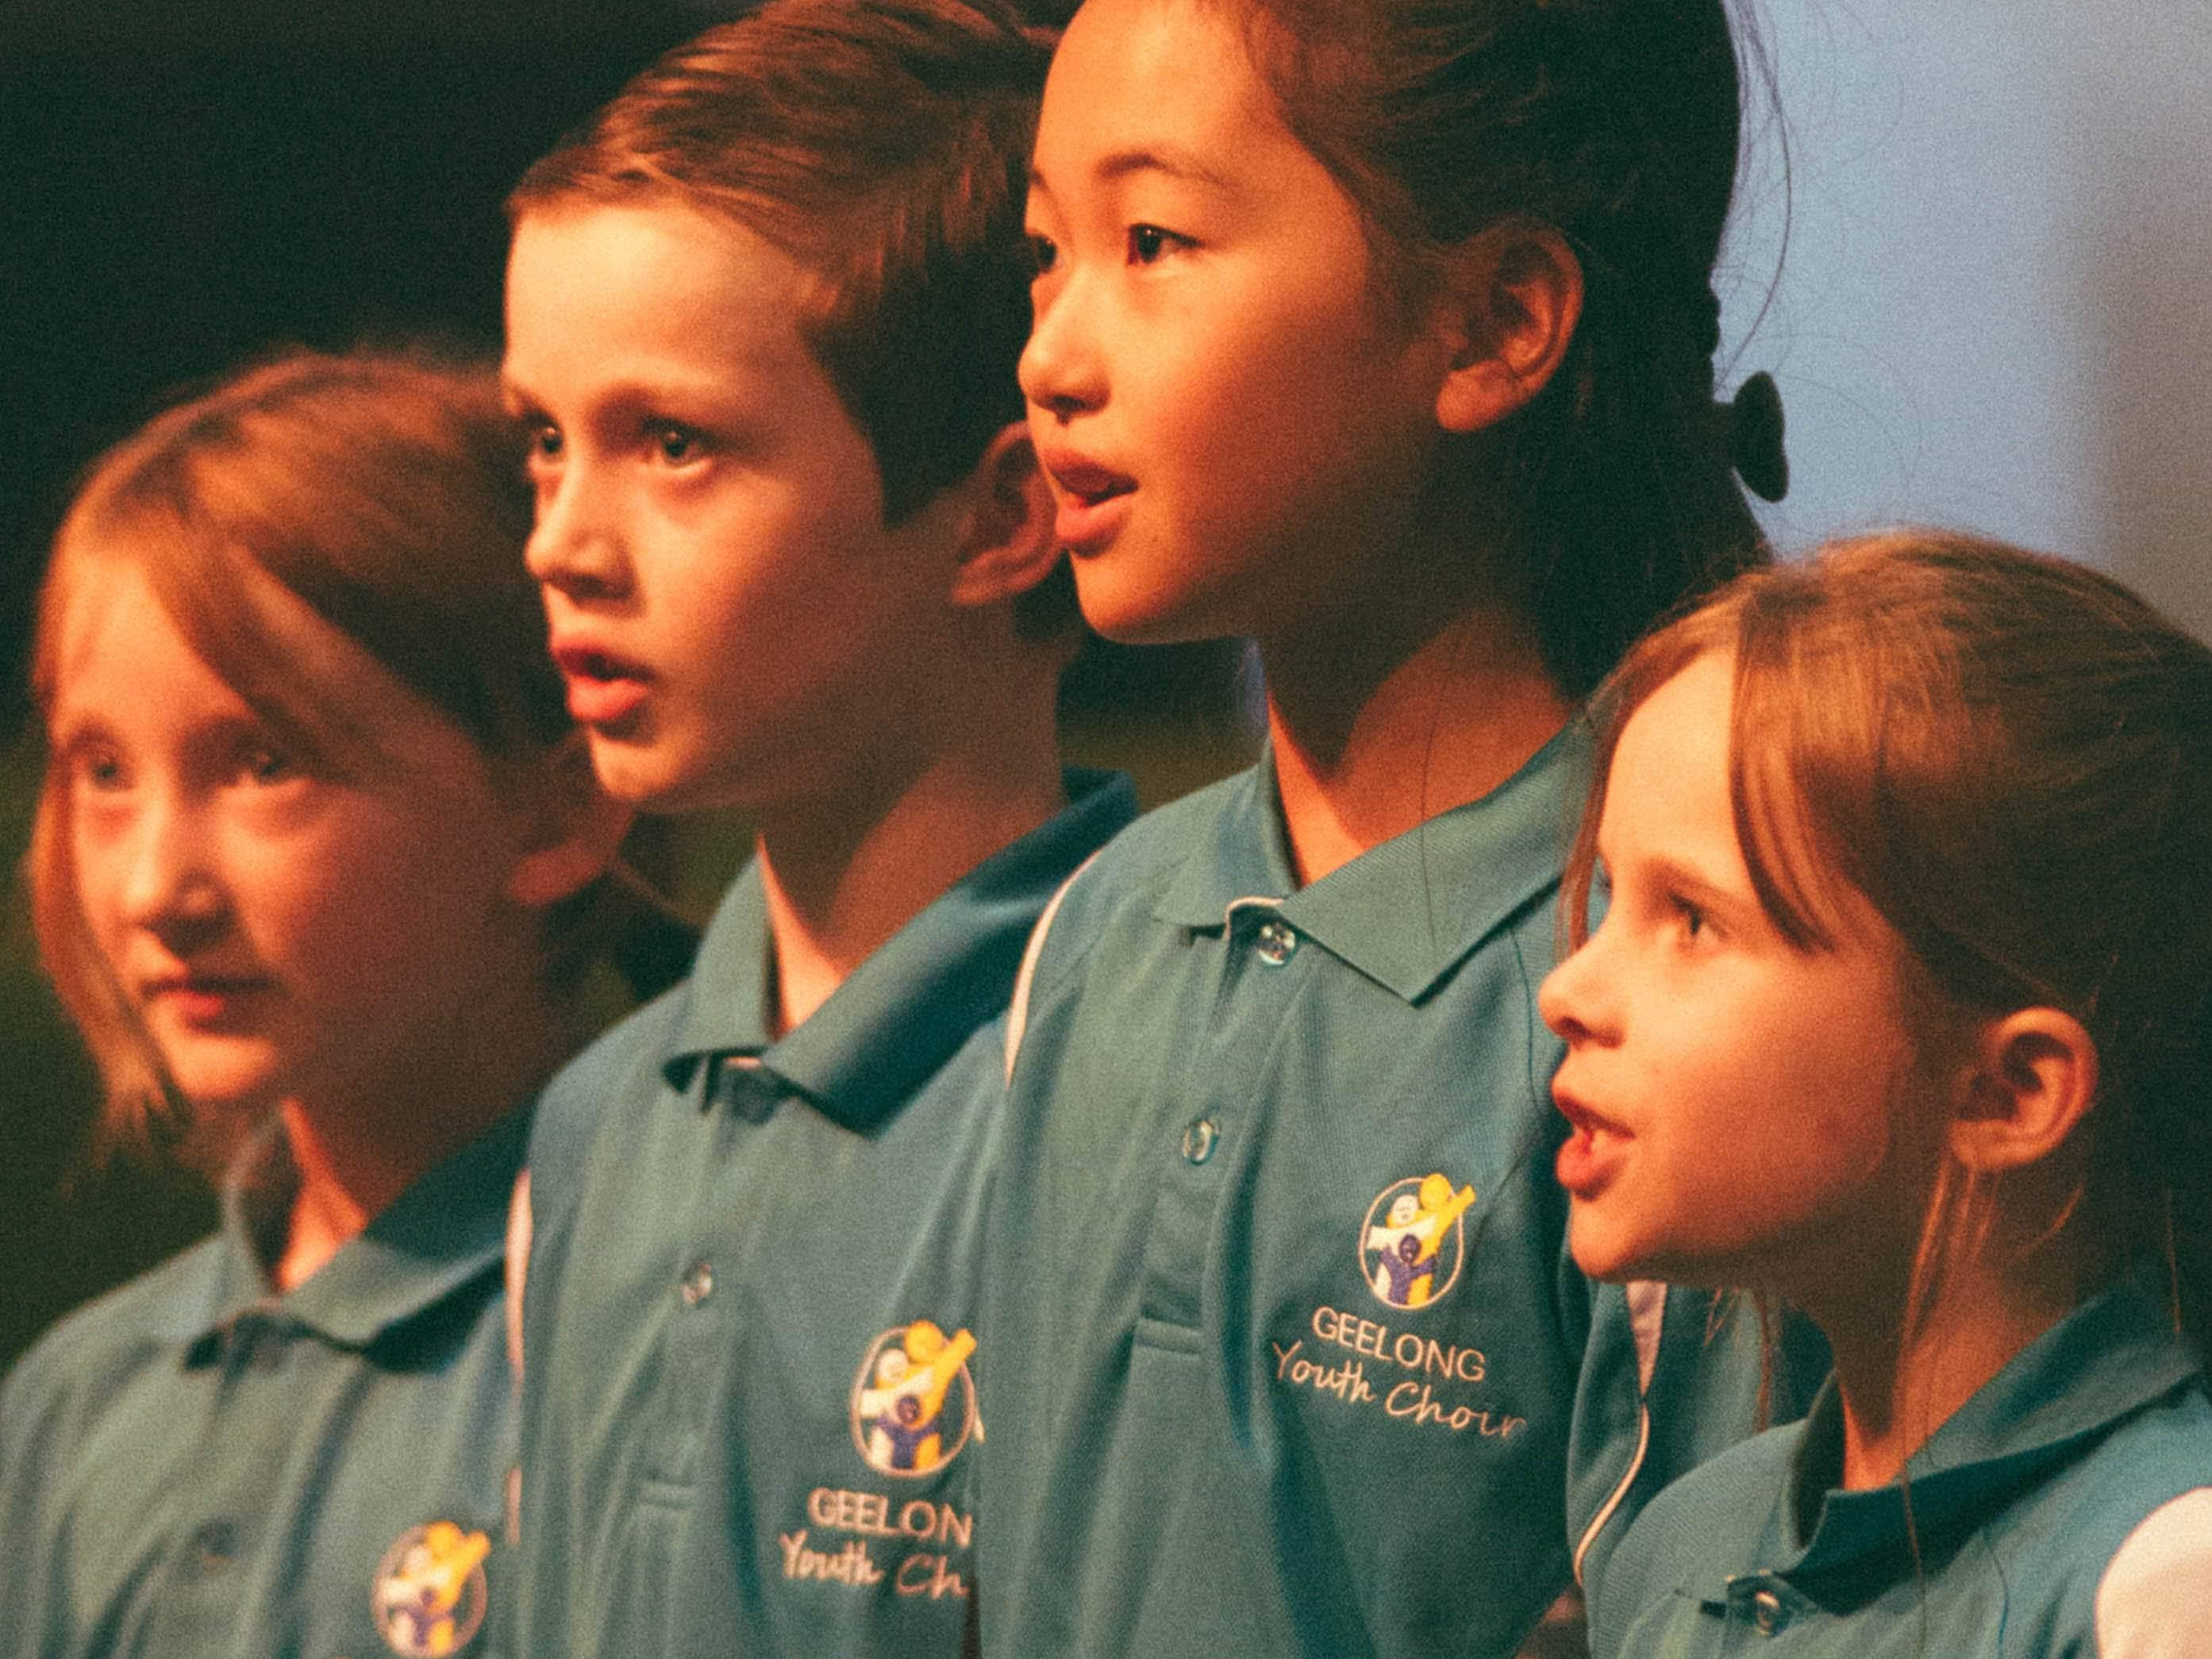 Prelude Choir Geelong Youth Choir